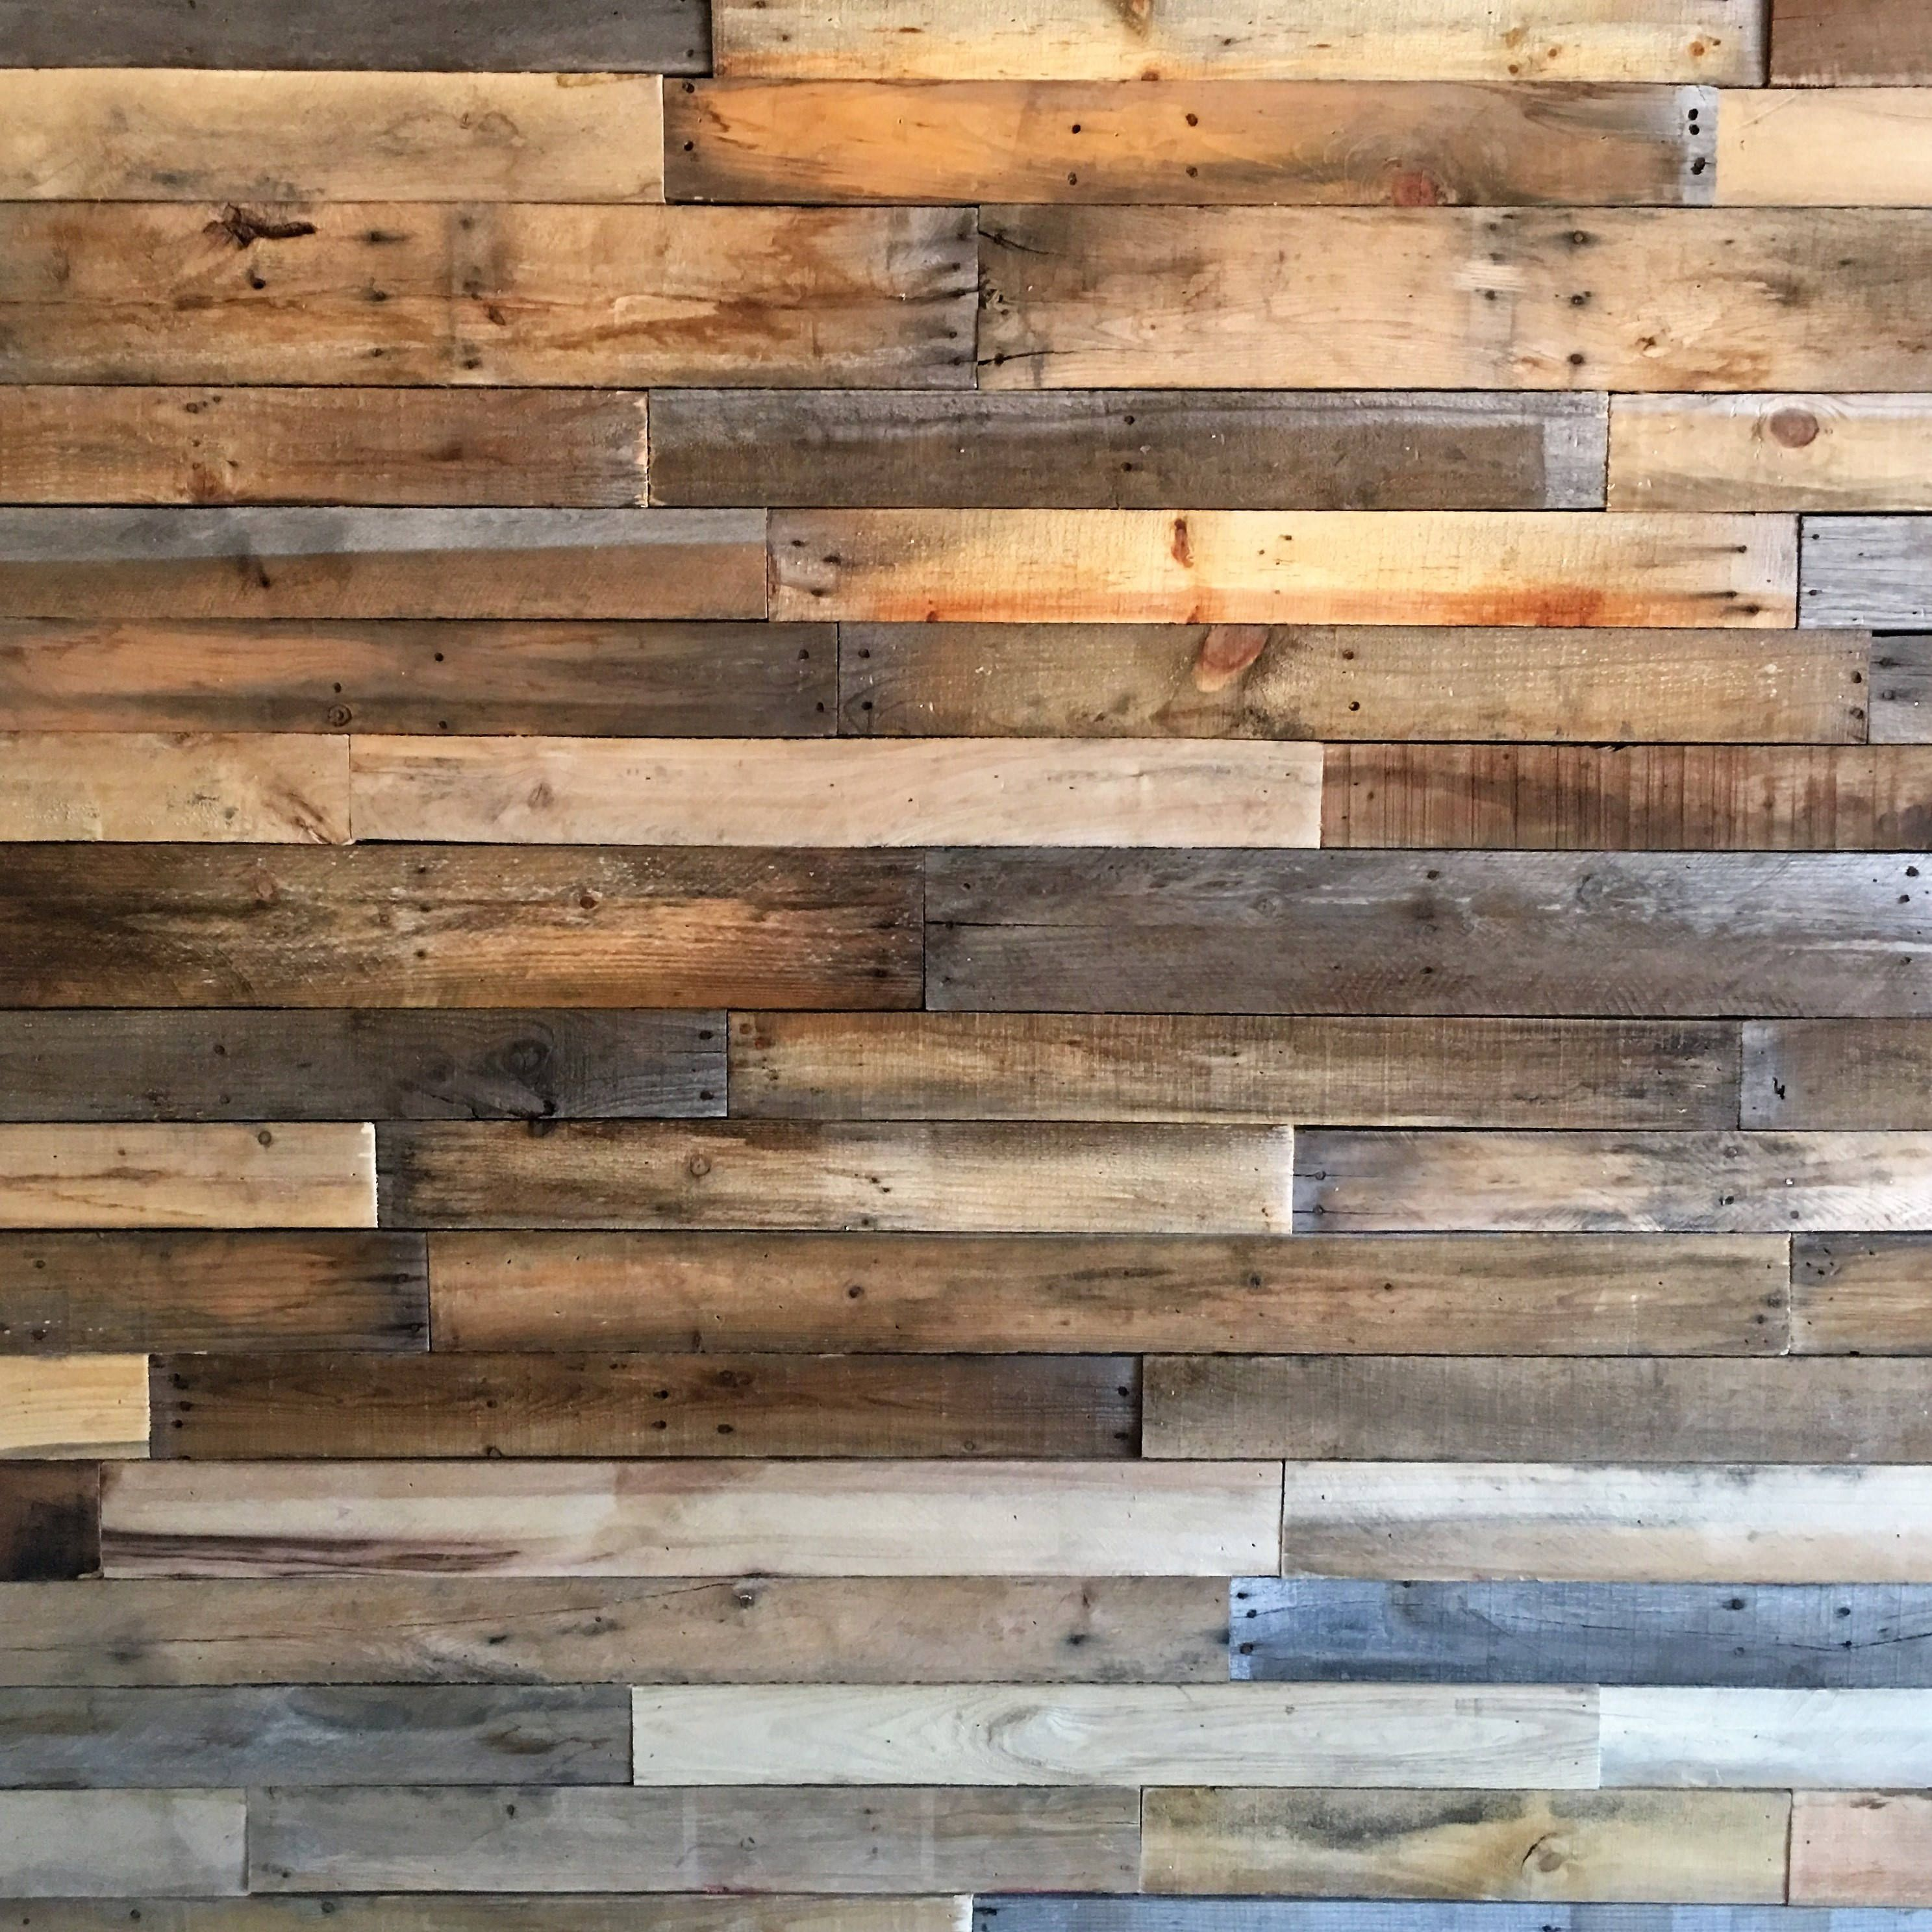 Reuse Pallet For Accent Wall Ideas: Sealed Reclaimed Pallet Wood Boards-25 SQ FT Bundle